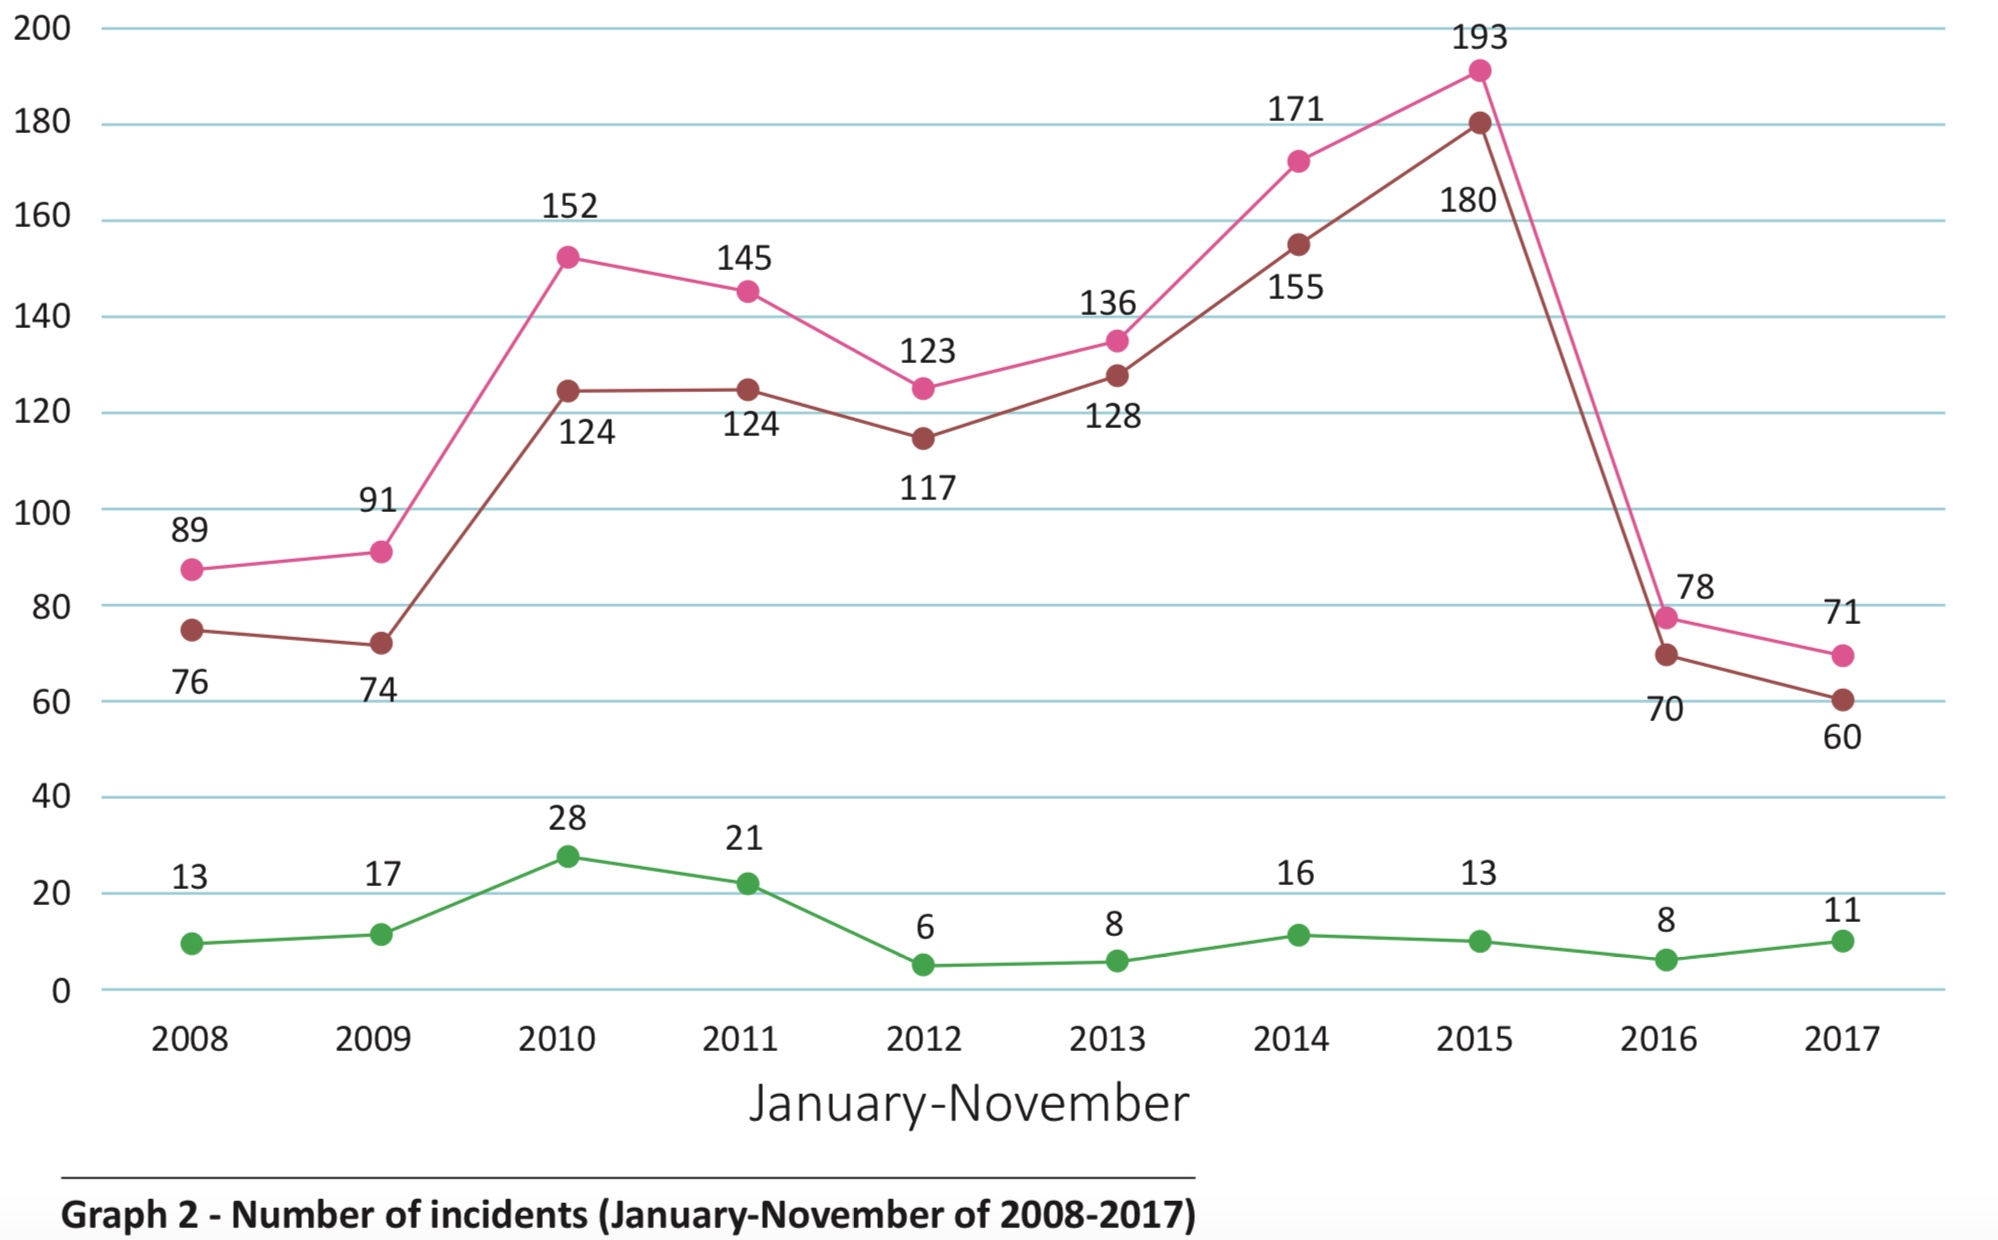 Graph 2, Incidents Jan-Nov 2008-2017: Image courtesy of ReCAAP ISC